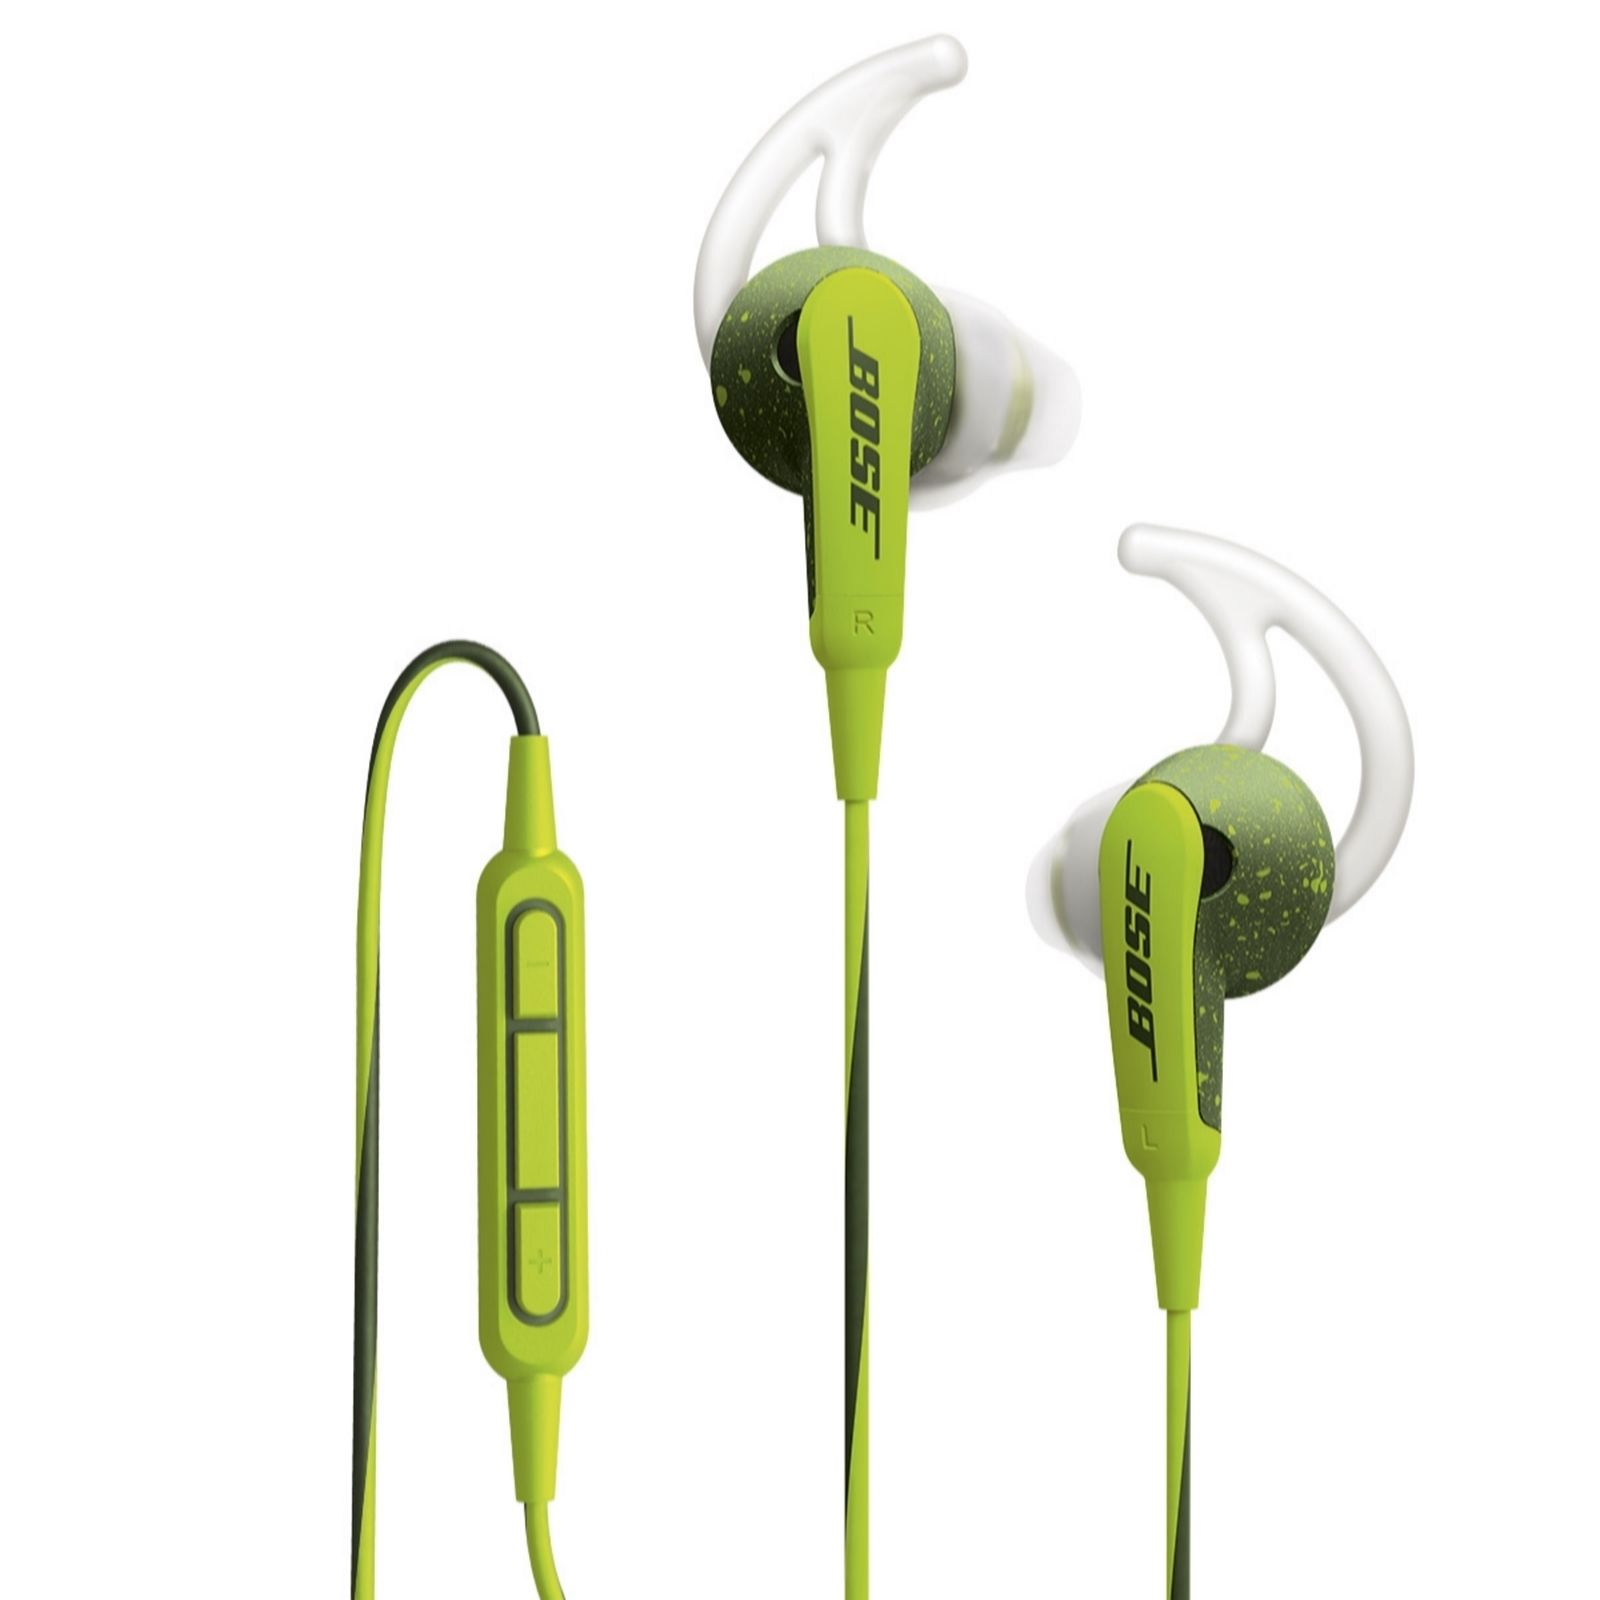 Bose SoundSport Series II In-Ear Headphones for Apple Devices